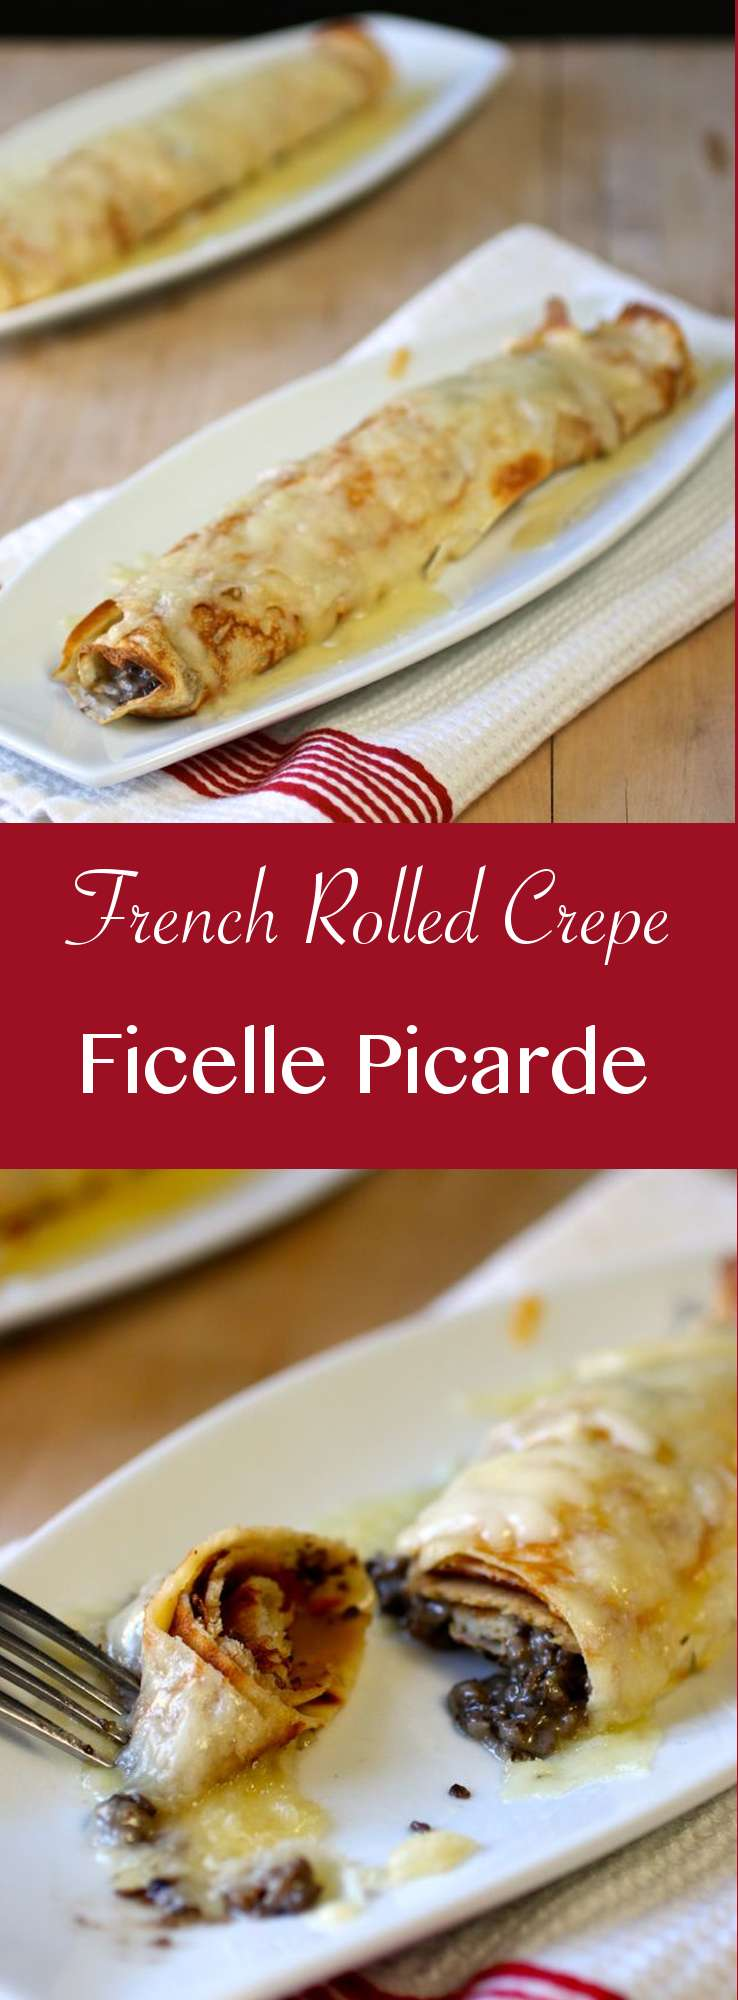 Ficelle Picarde - Authentic French Recipe | 196 flavors